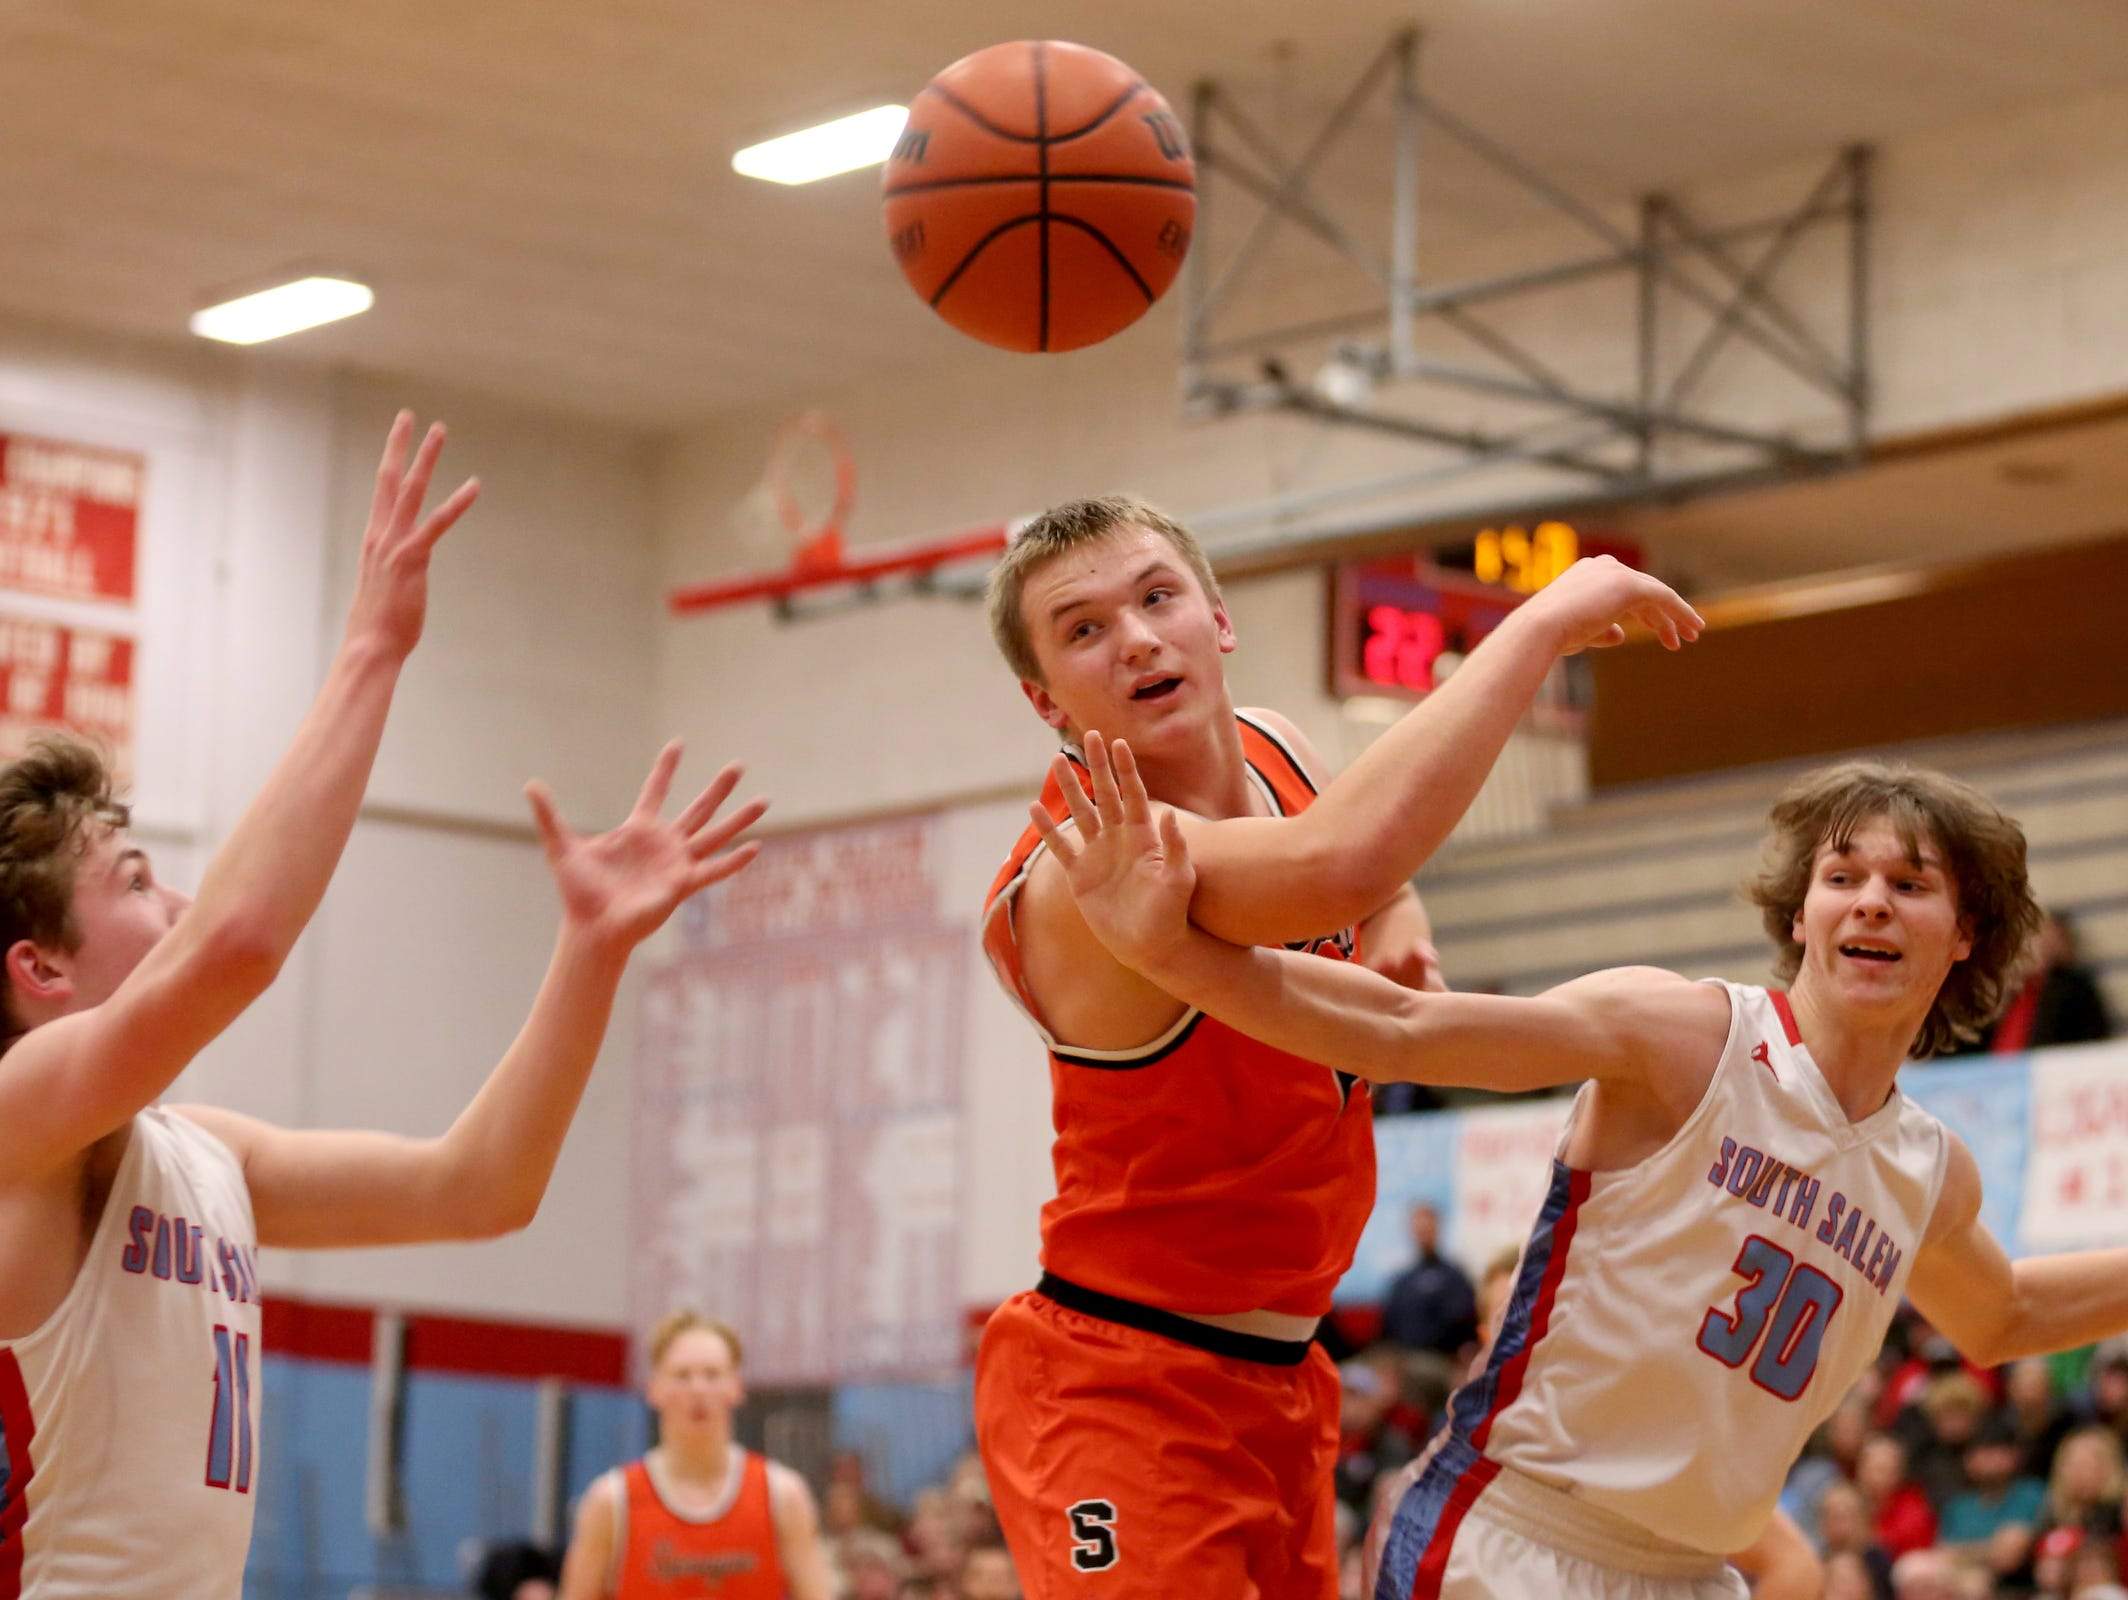 Sprague's Teagan Quitoriano (14) and South Salem's Tyler Wadleigh (11) and Ryan Brown (30) all reach for a rebound in the second half of the Sprague vs. South Salem boy's basketball game at South Salem High School on Friday, Feb. 3, 2017. Sprague won the game 64-58.